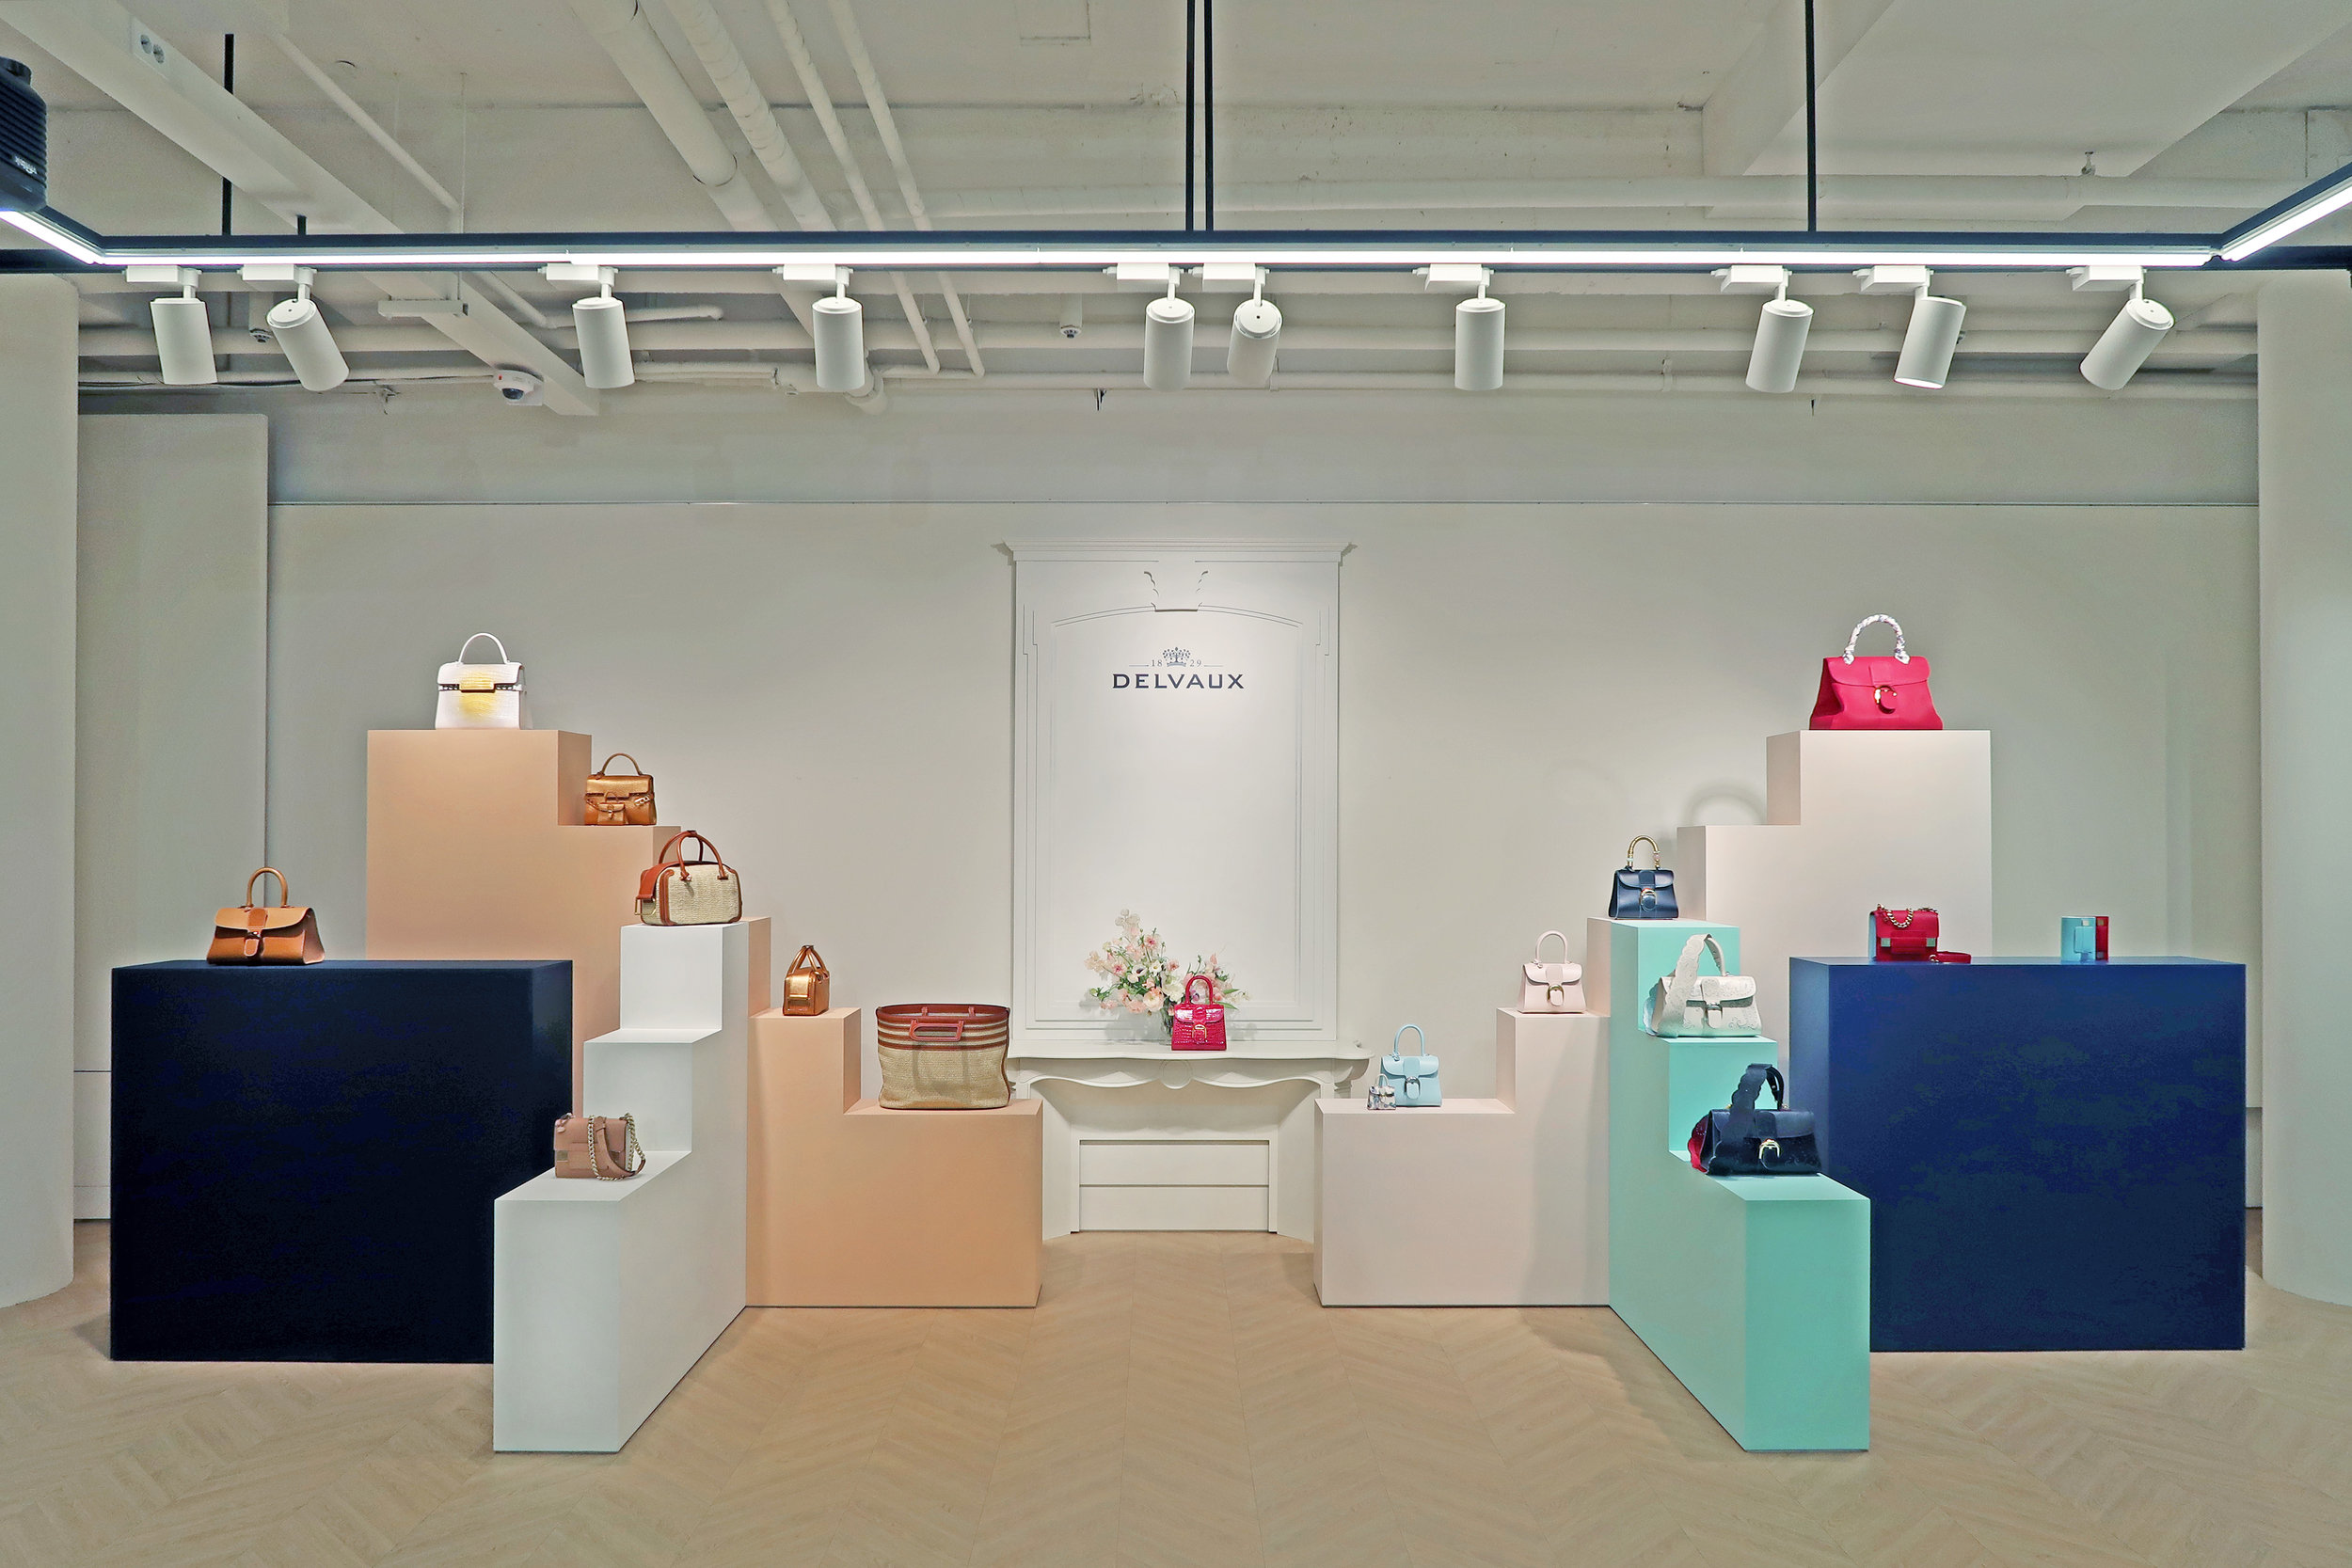 delvaux ss2019 pop-up in seoul